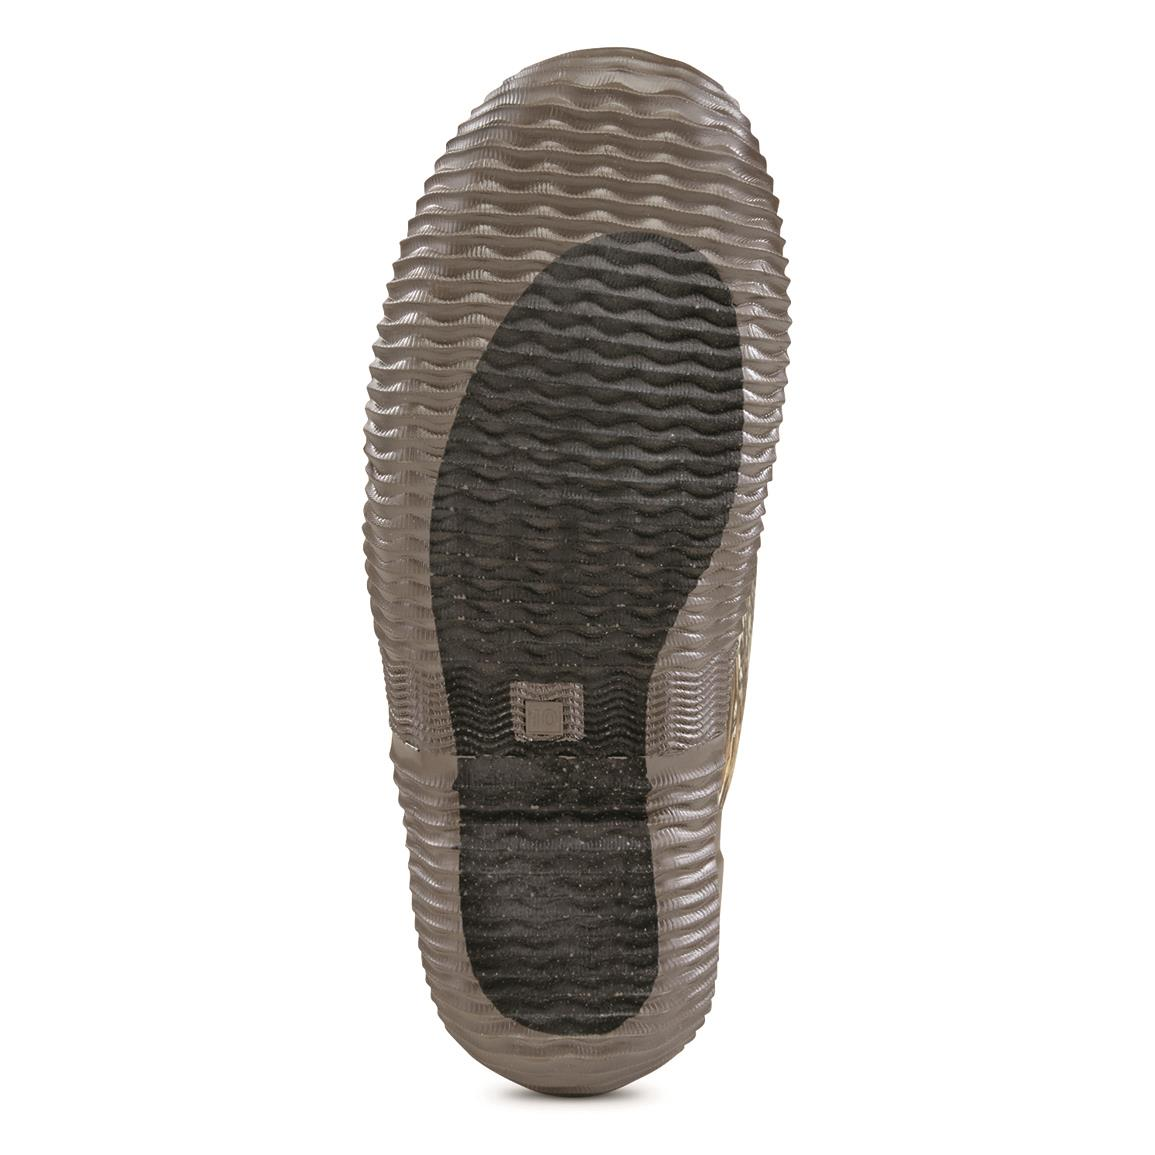 Calendar rubber outsole